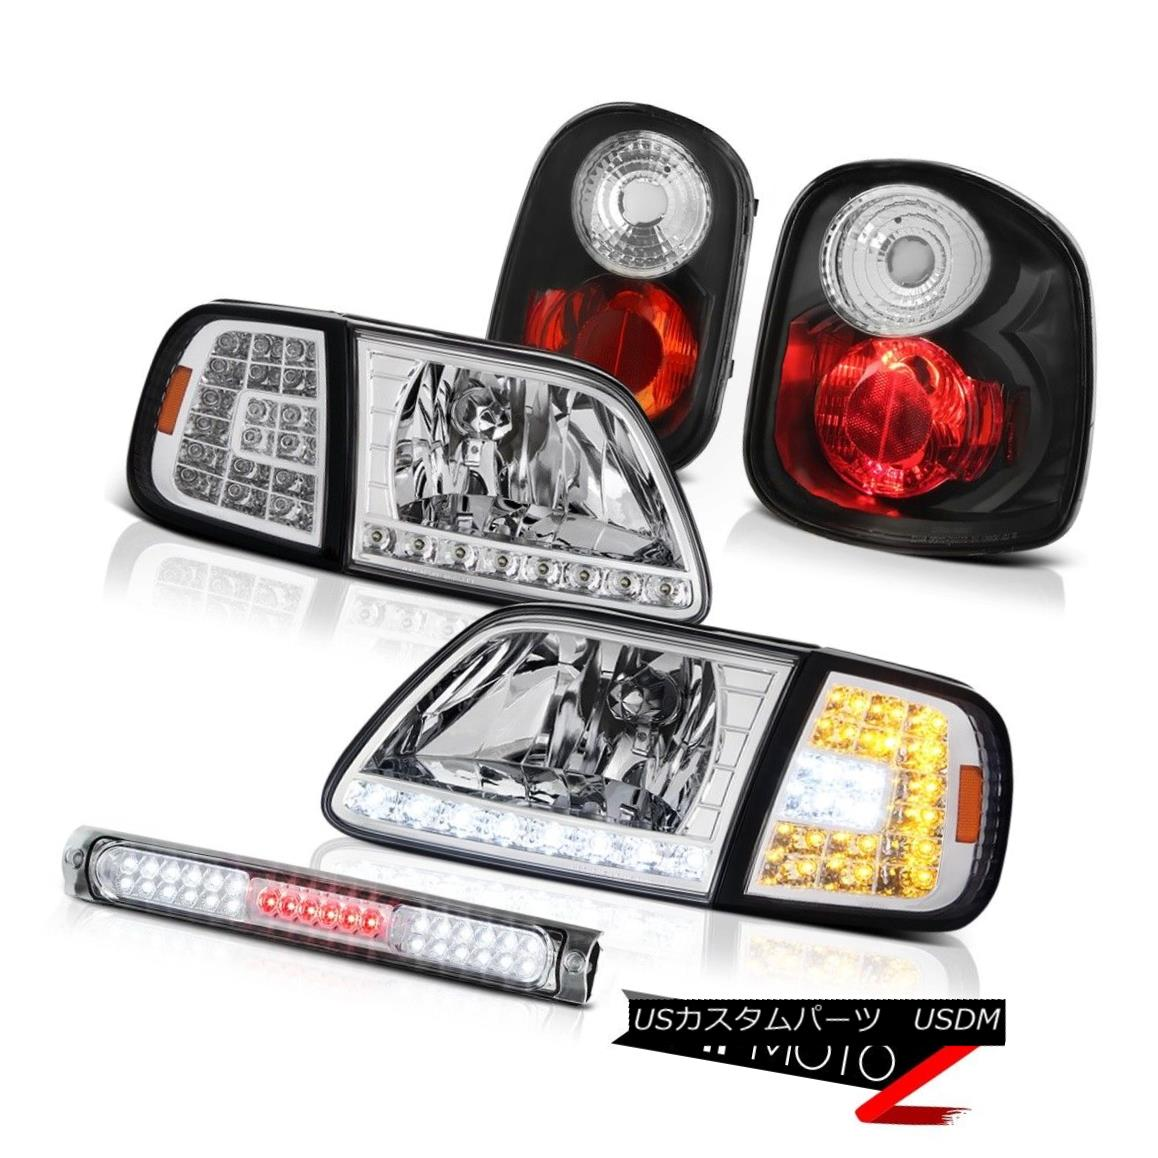 テールライト 01-03 F150 Flareside 4.2L Euro SMD Corner+Headlamps Reverse TailLight Brake LED 01-03 F150フラレイド4.2LユーロSMDコーナー+ヘッドラム ps逆テールライトブレーキLED